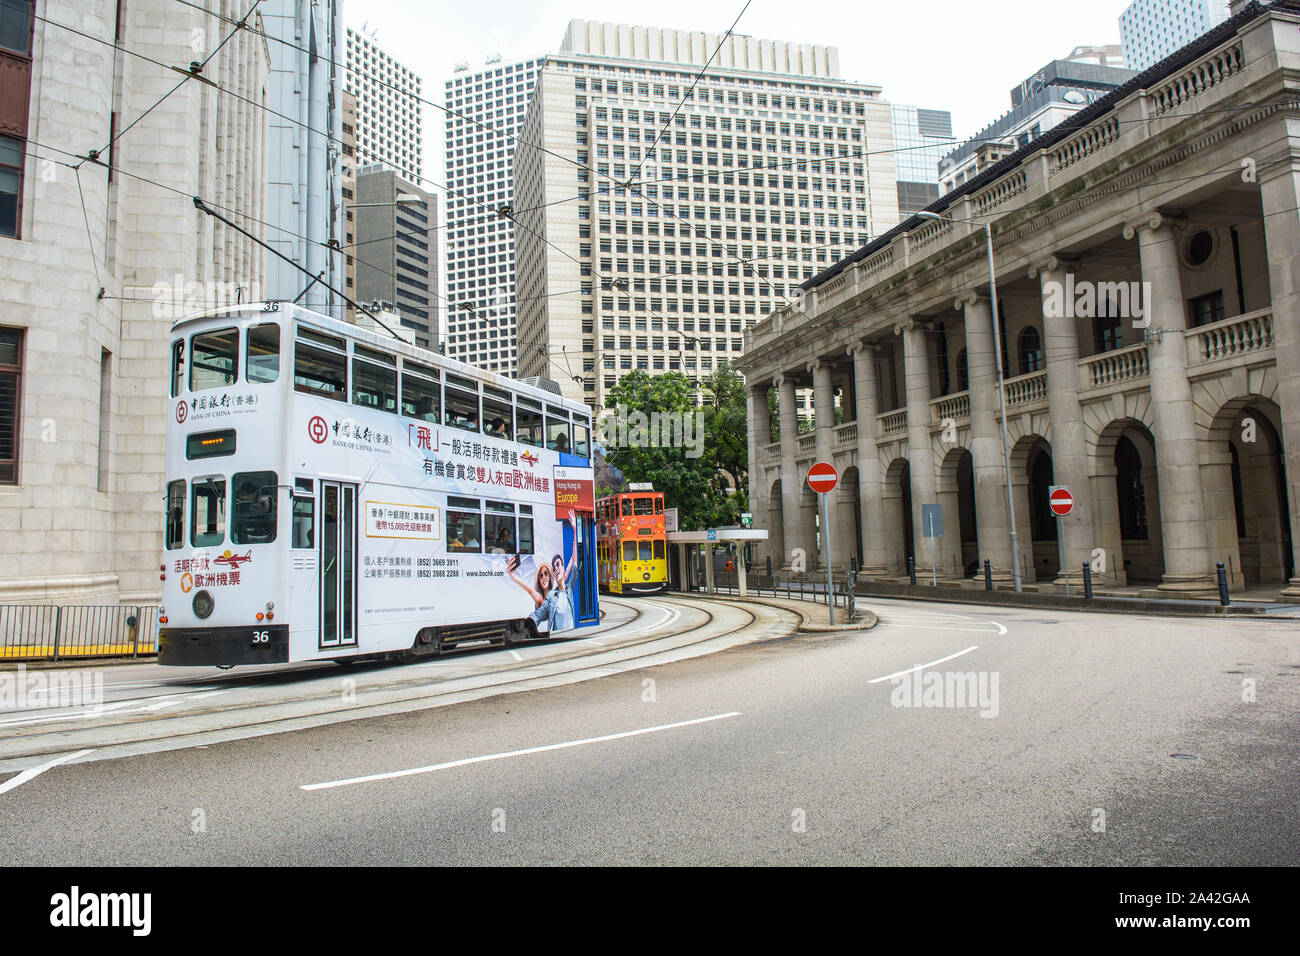 Tram passed by in Causeway Bay road, Hong Kong SAR Stock Photo